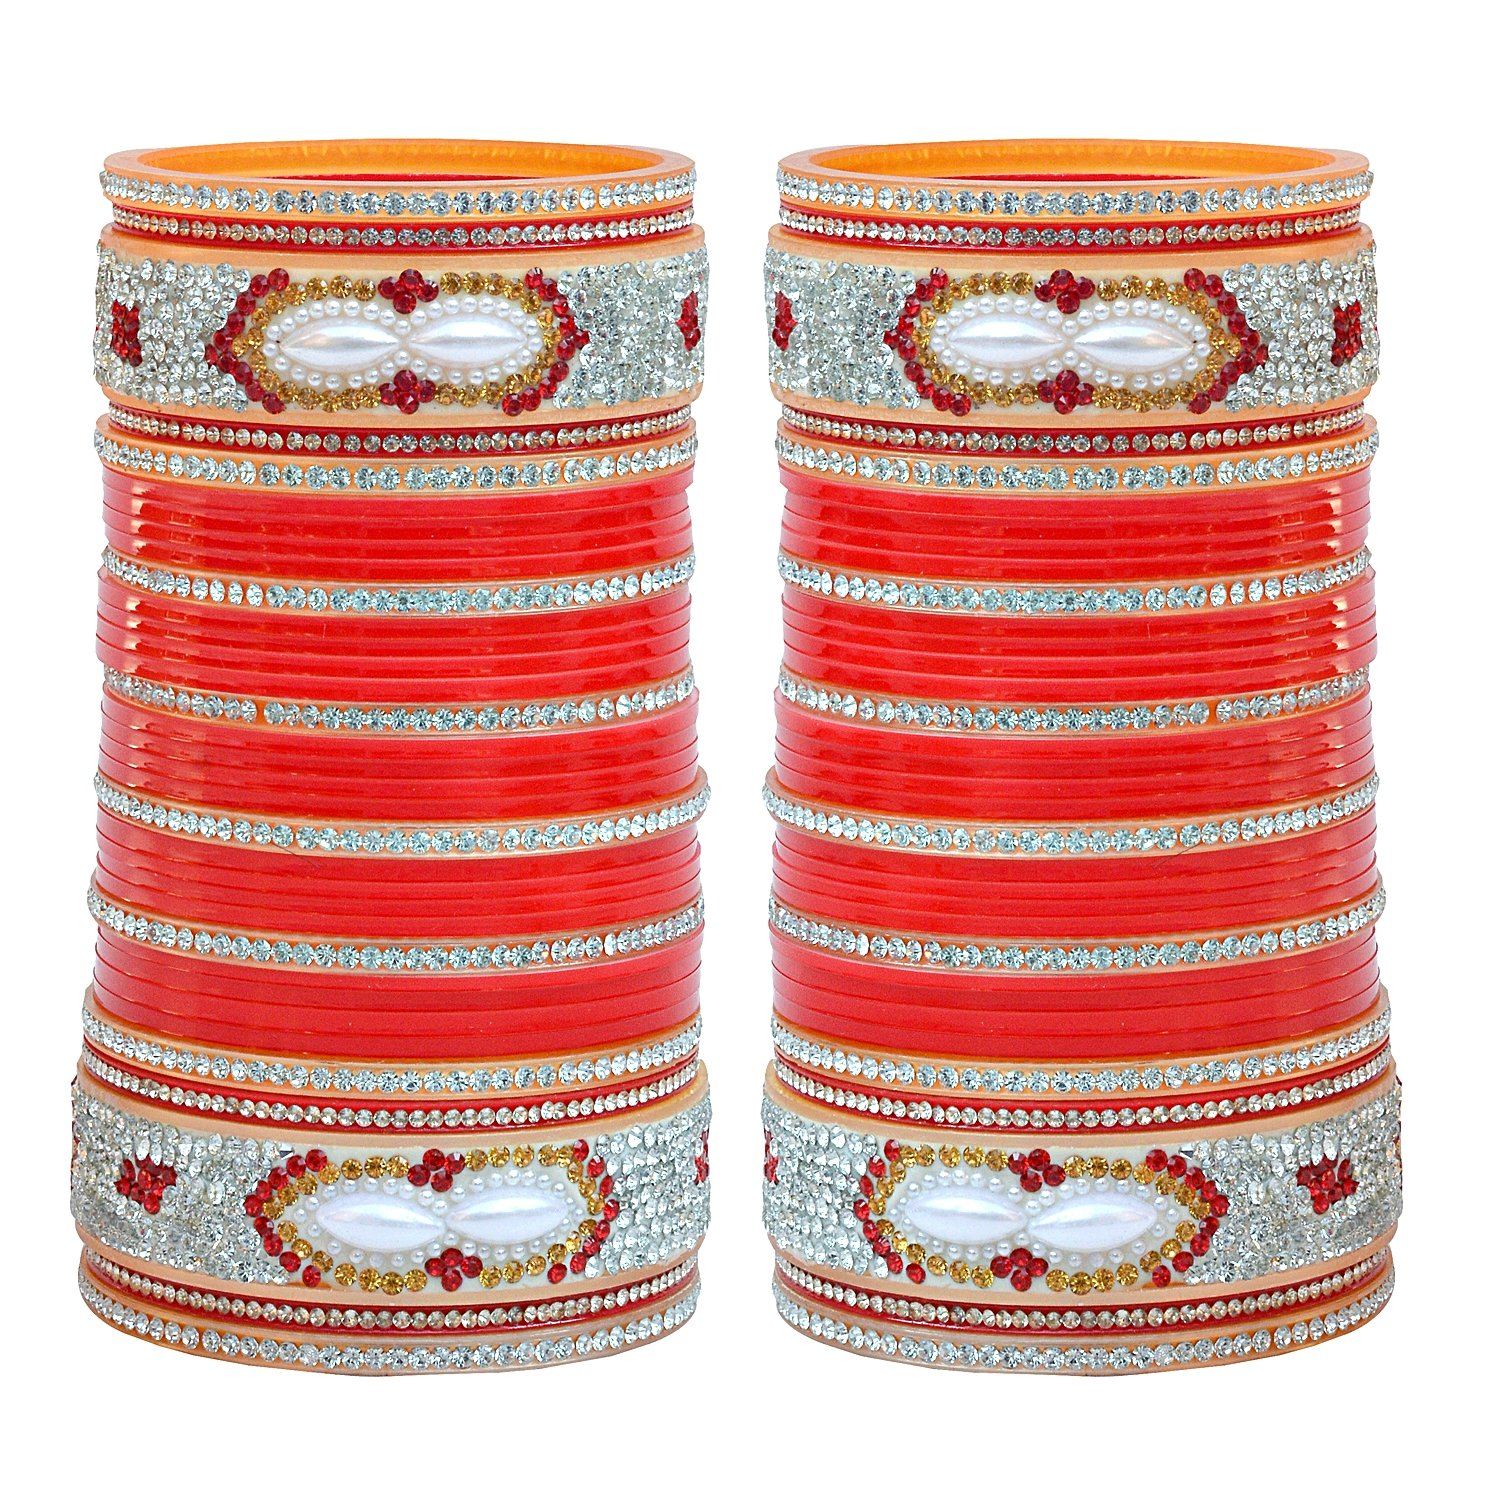 necklaces arrivals copy red wedding chura bangles more manihaar traditional bridal acrylic fashion design bracelets jewellery best views latest earrings